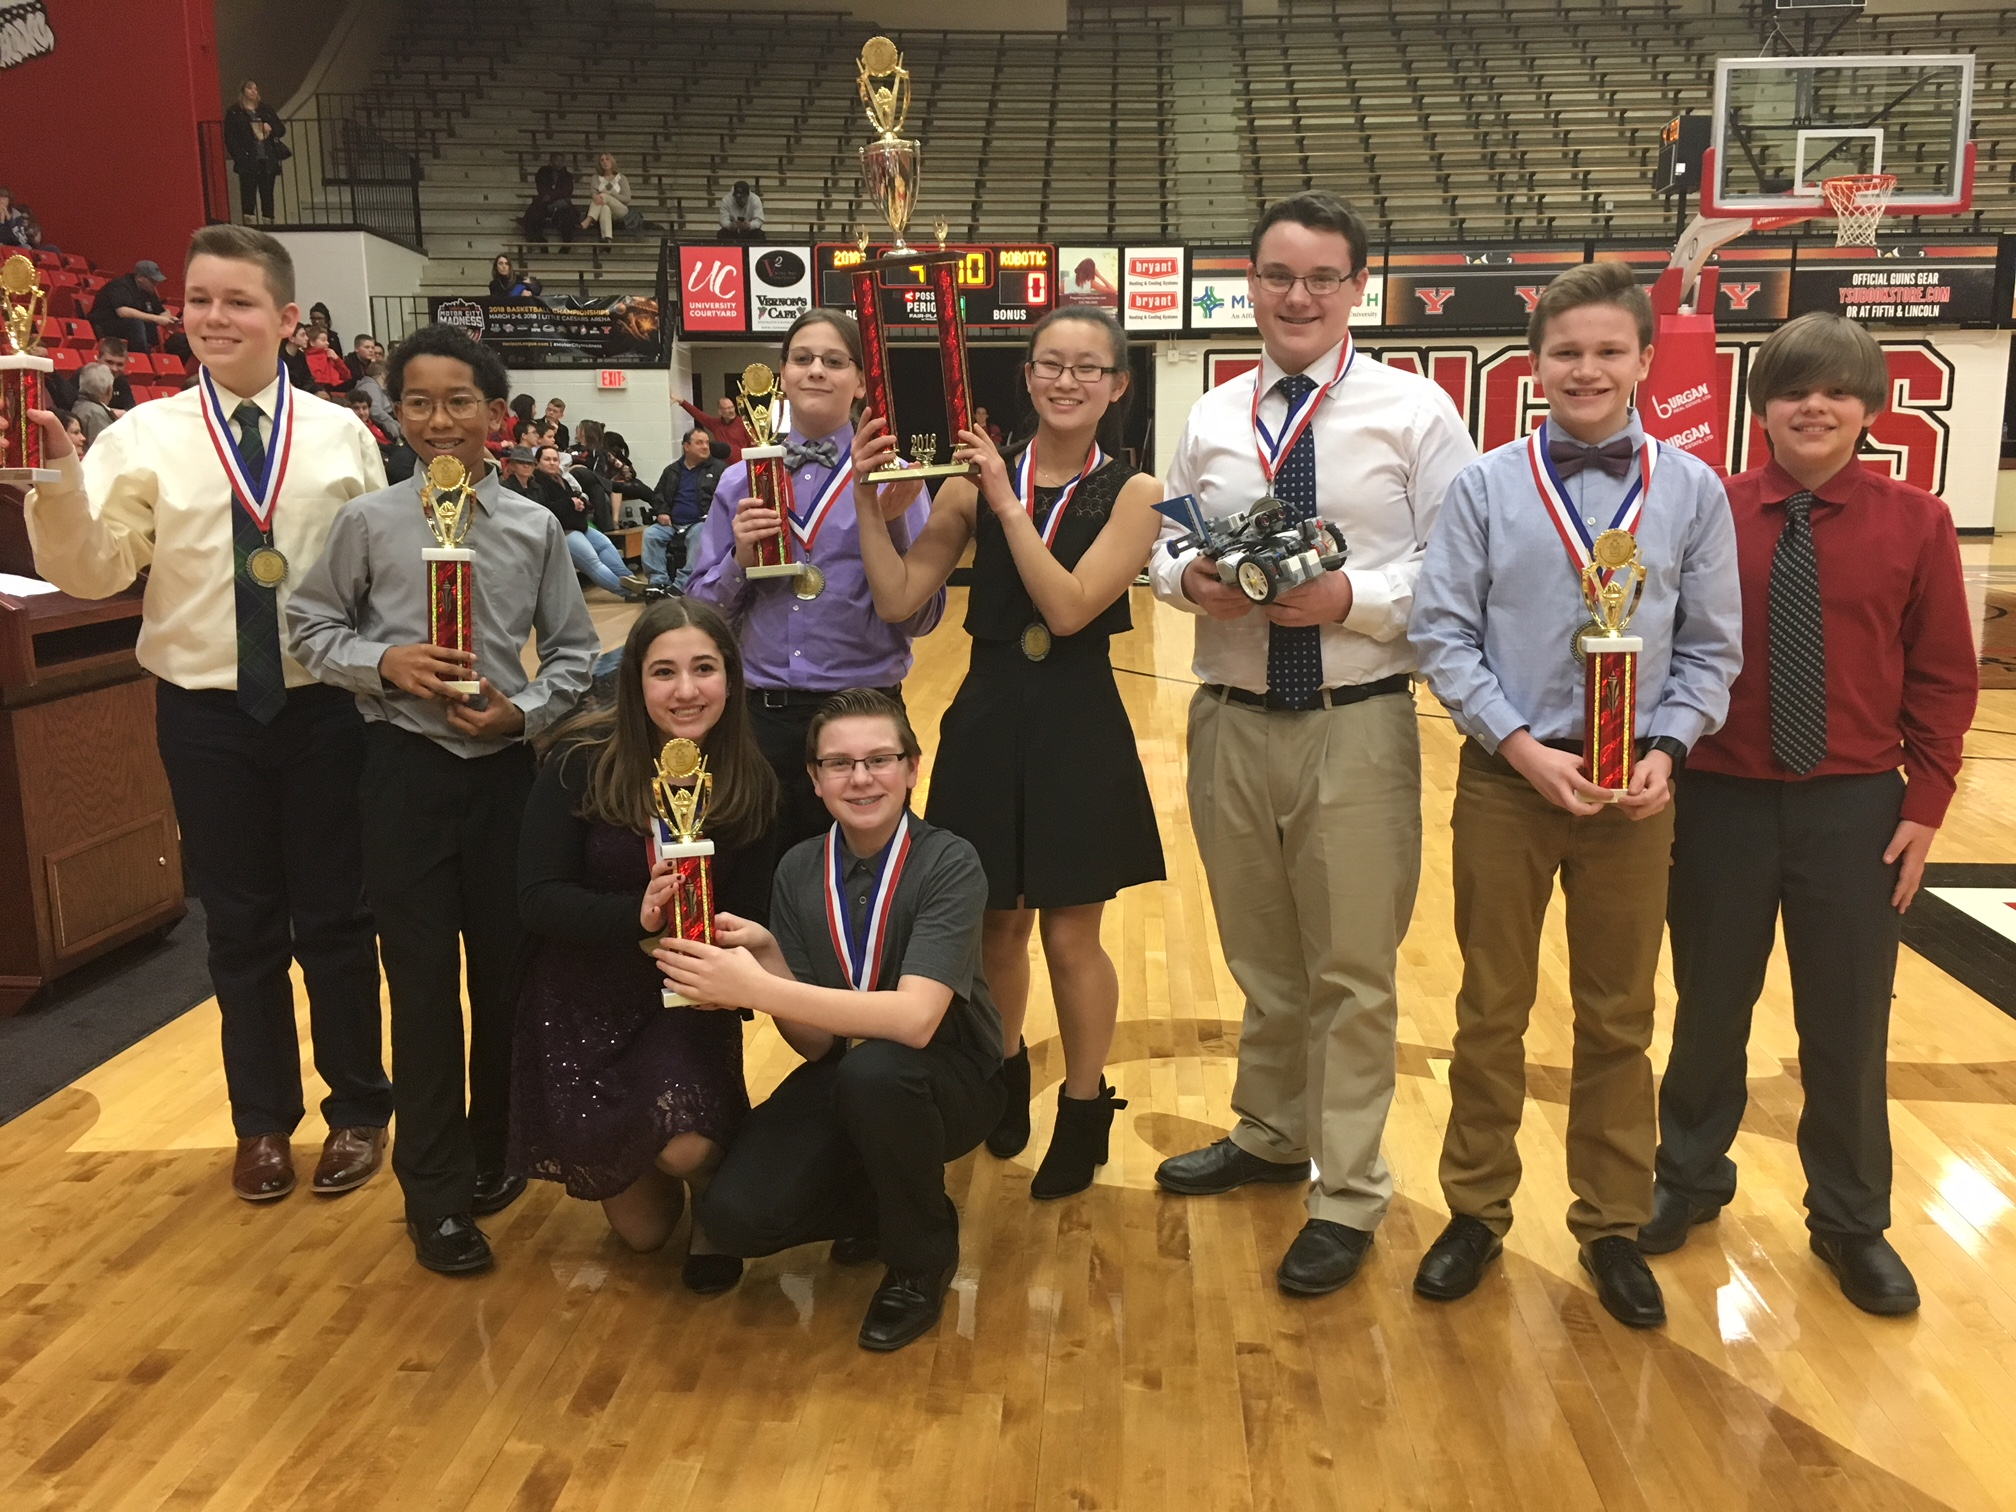 Glenwood Boardman Team holding trophies, they took 1st place overall